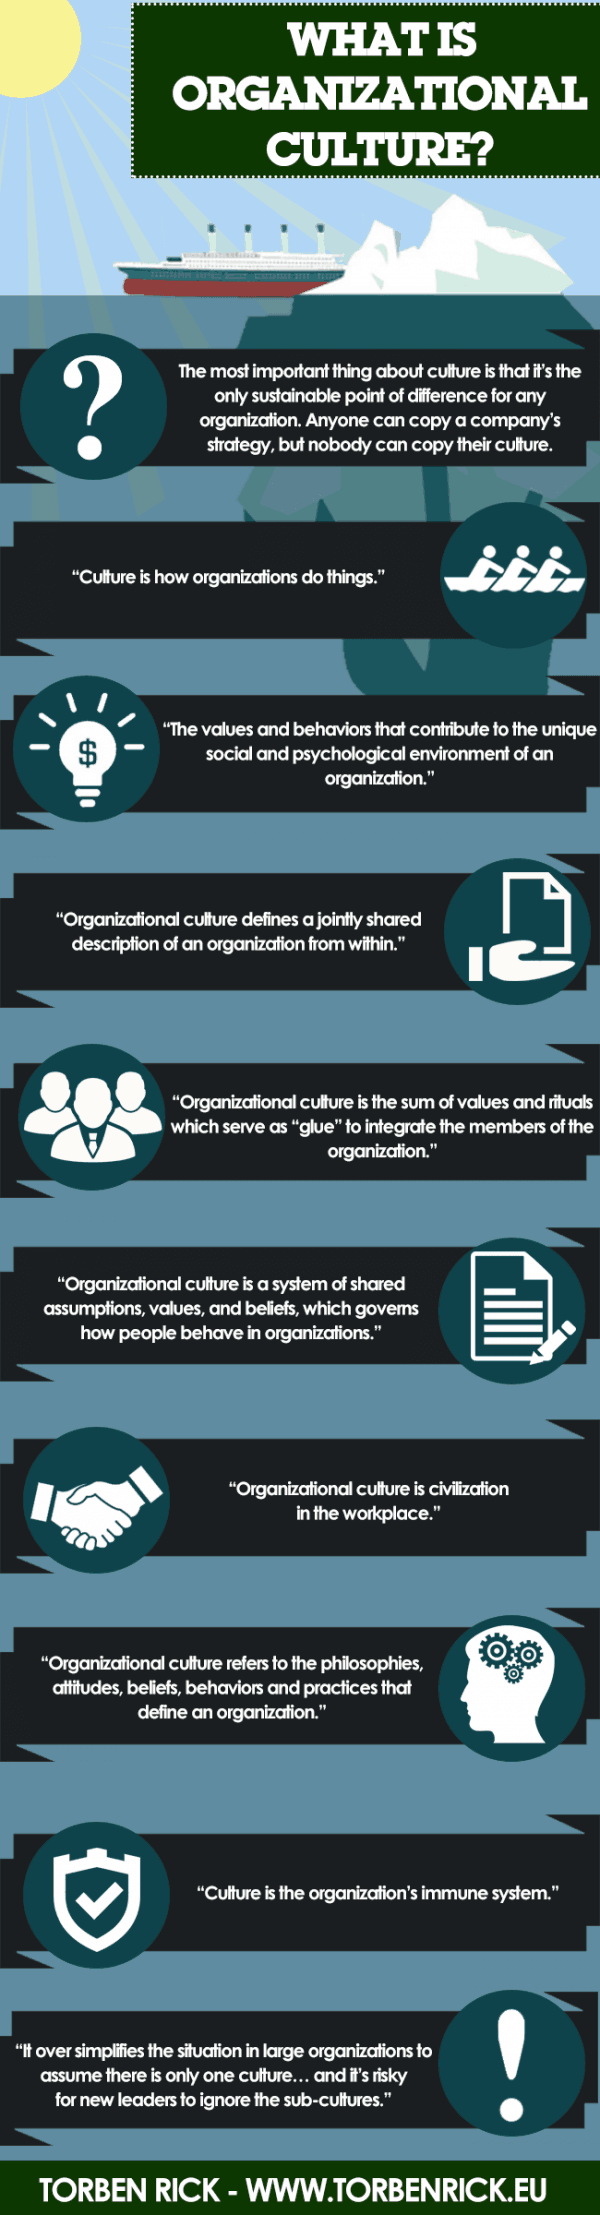 What is organizational culture - infographic